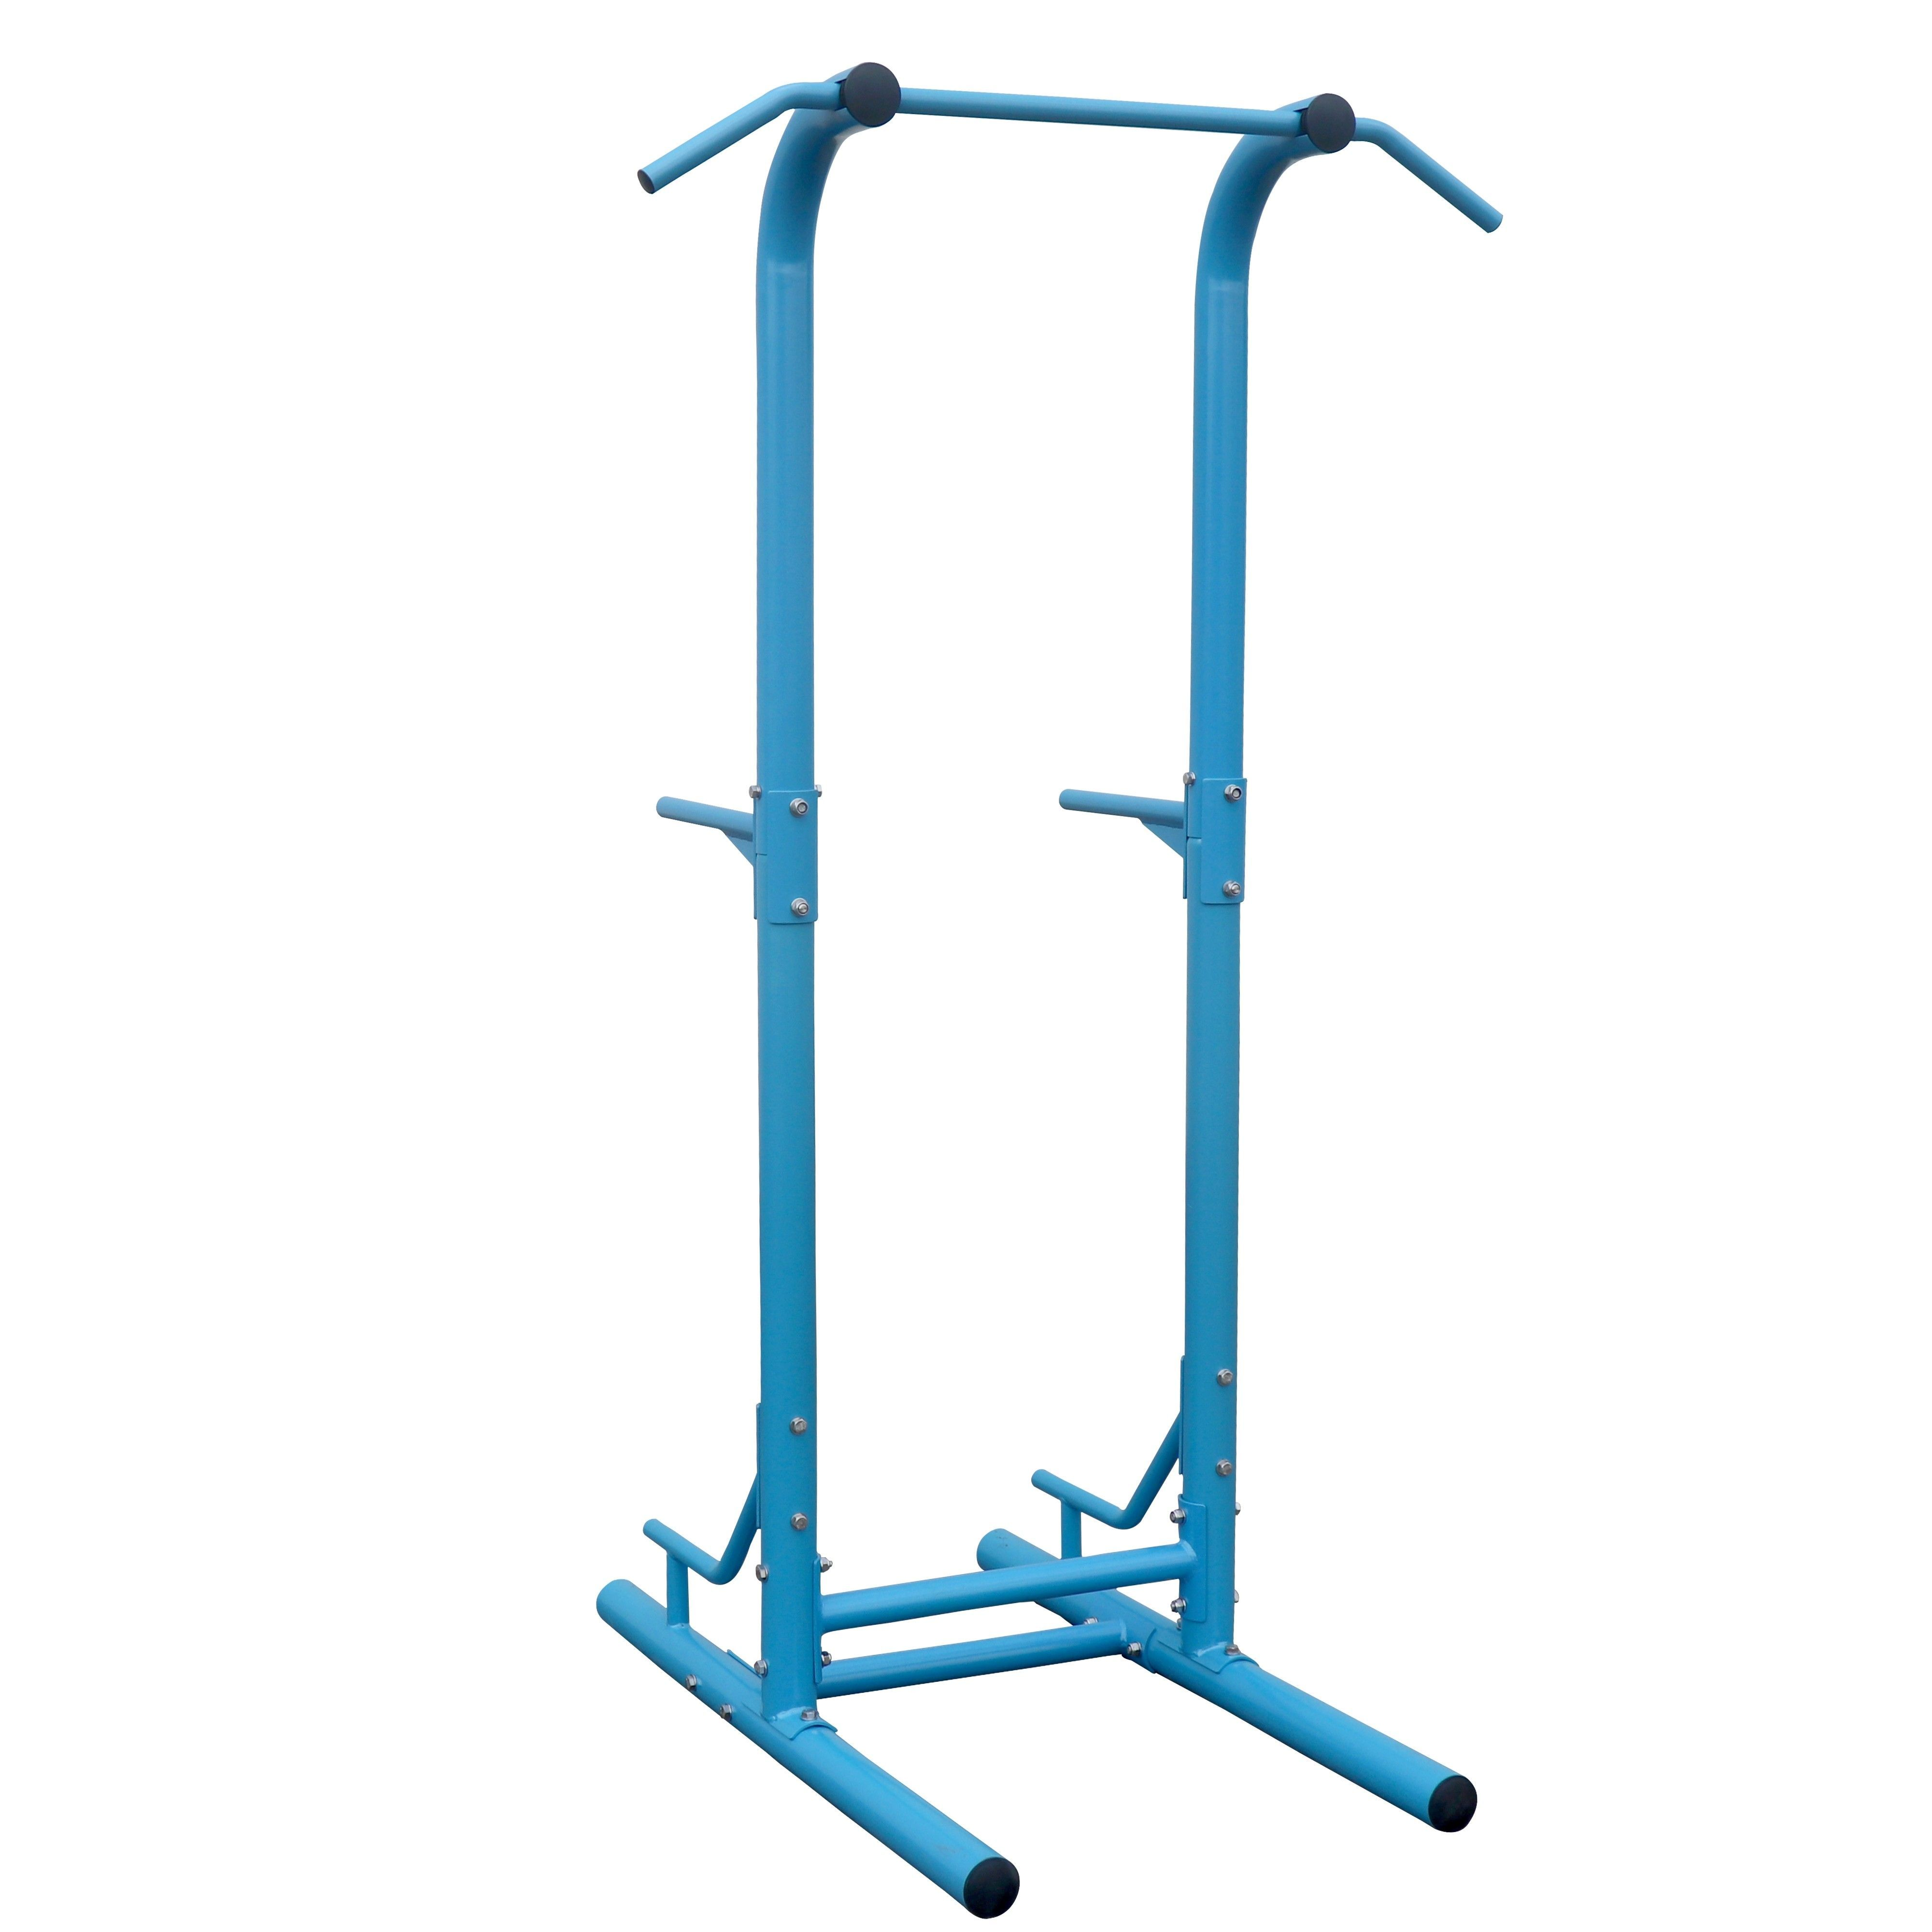 Outdoor Power Tower Pull up bar Pull-up-bar Resistance ...